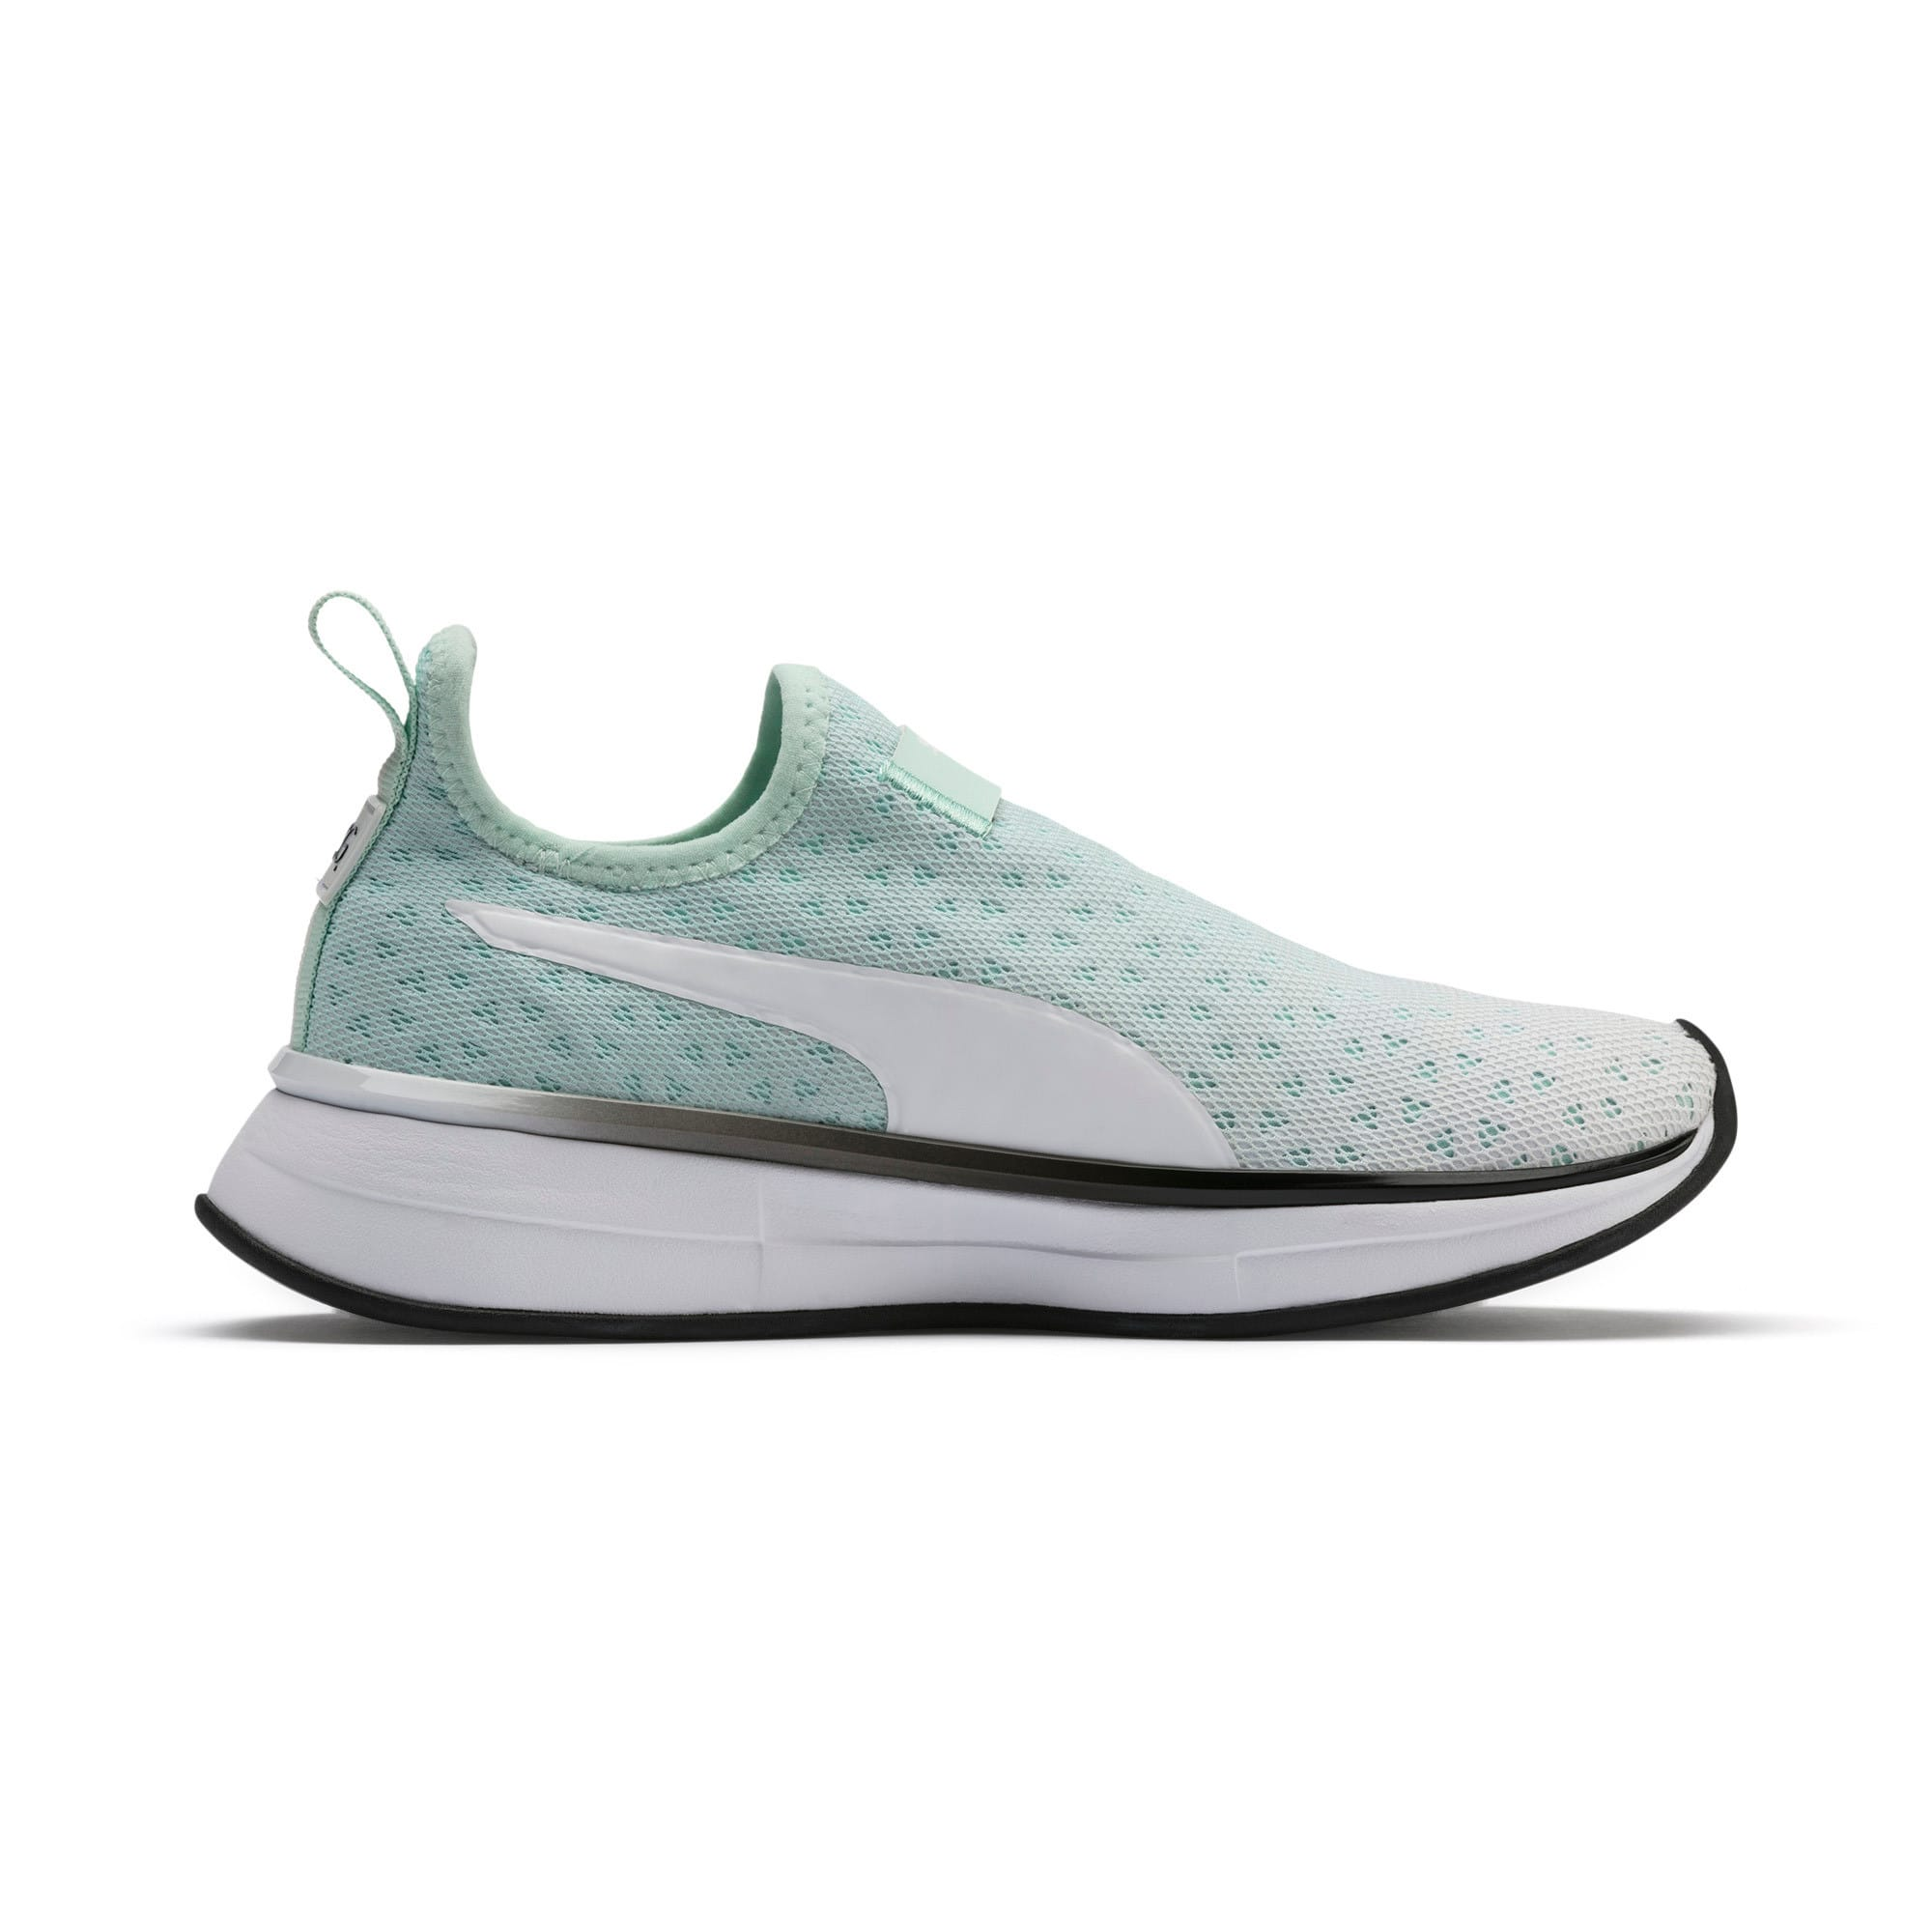 Thumbnail 6 of SG Slip-on Bright Fade Women's Training Shoes, Fair Aqua-Puma Black, medium